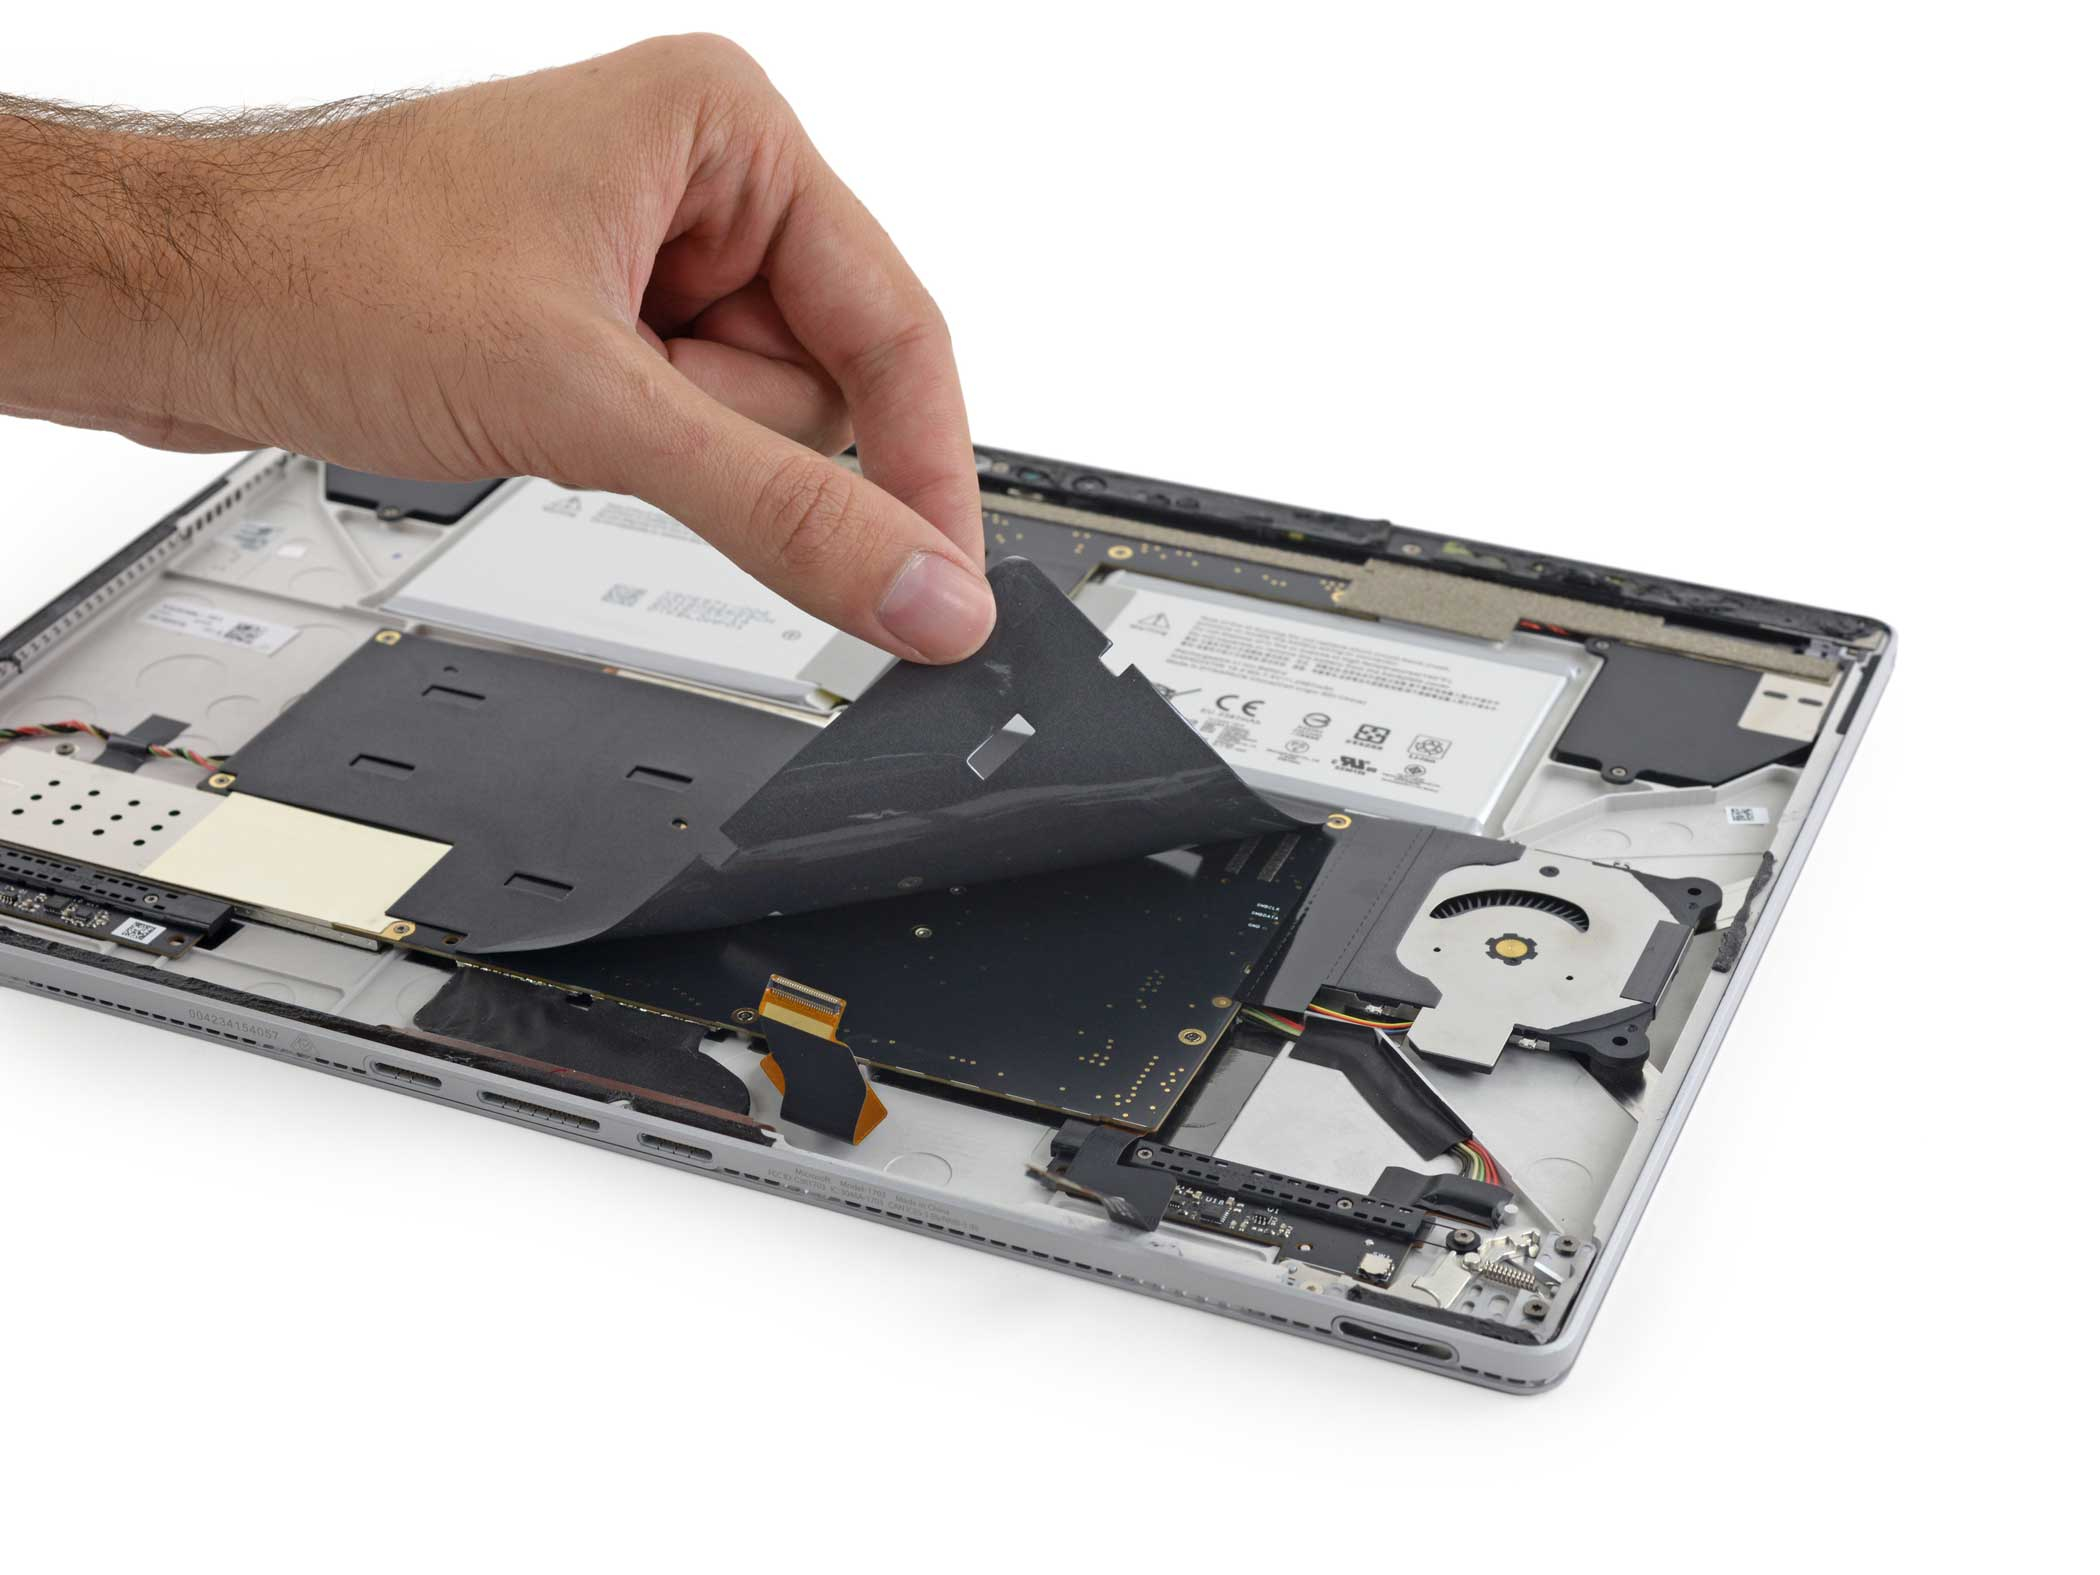 The Surface Book's motherboard is actually affixed upside-down.